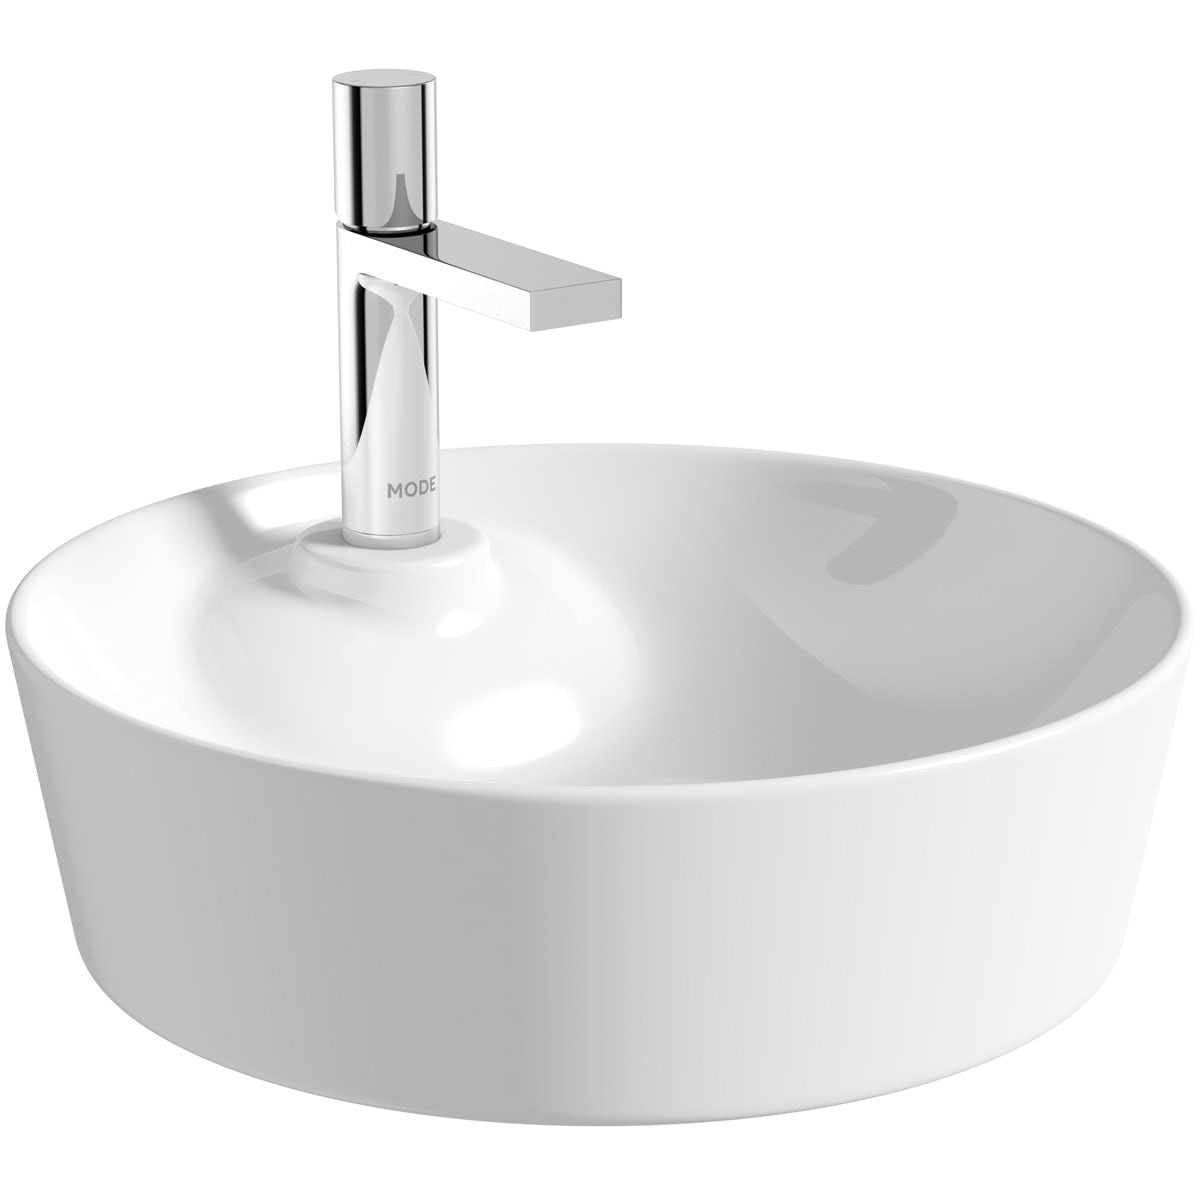 Mode Fairey round thin edge 1 tap hole basin 450mm